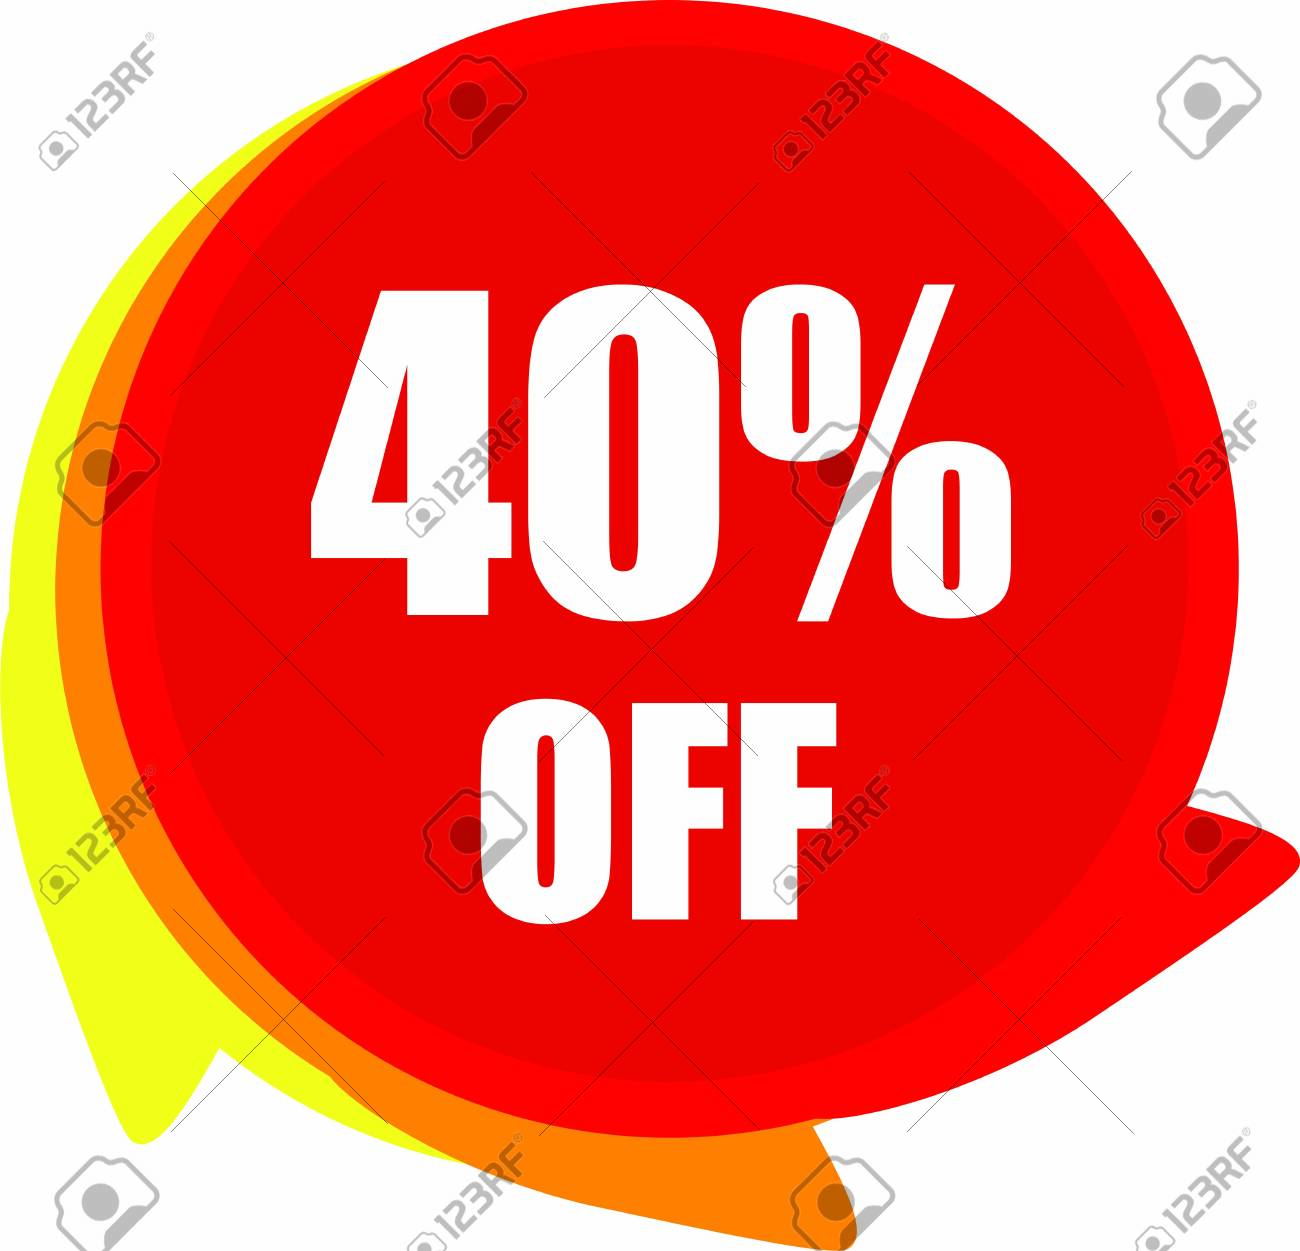 40 Percent Off Discount offer price label Graphics - 149099149